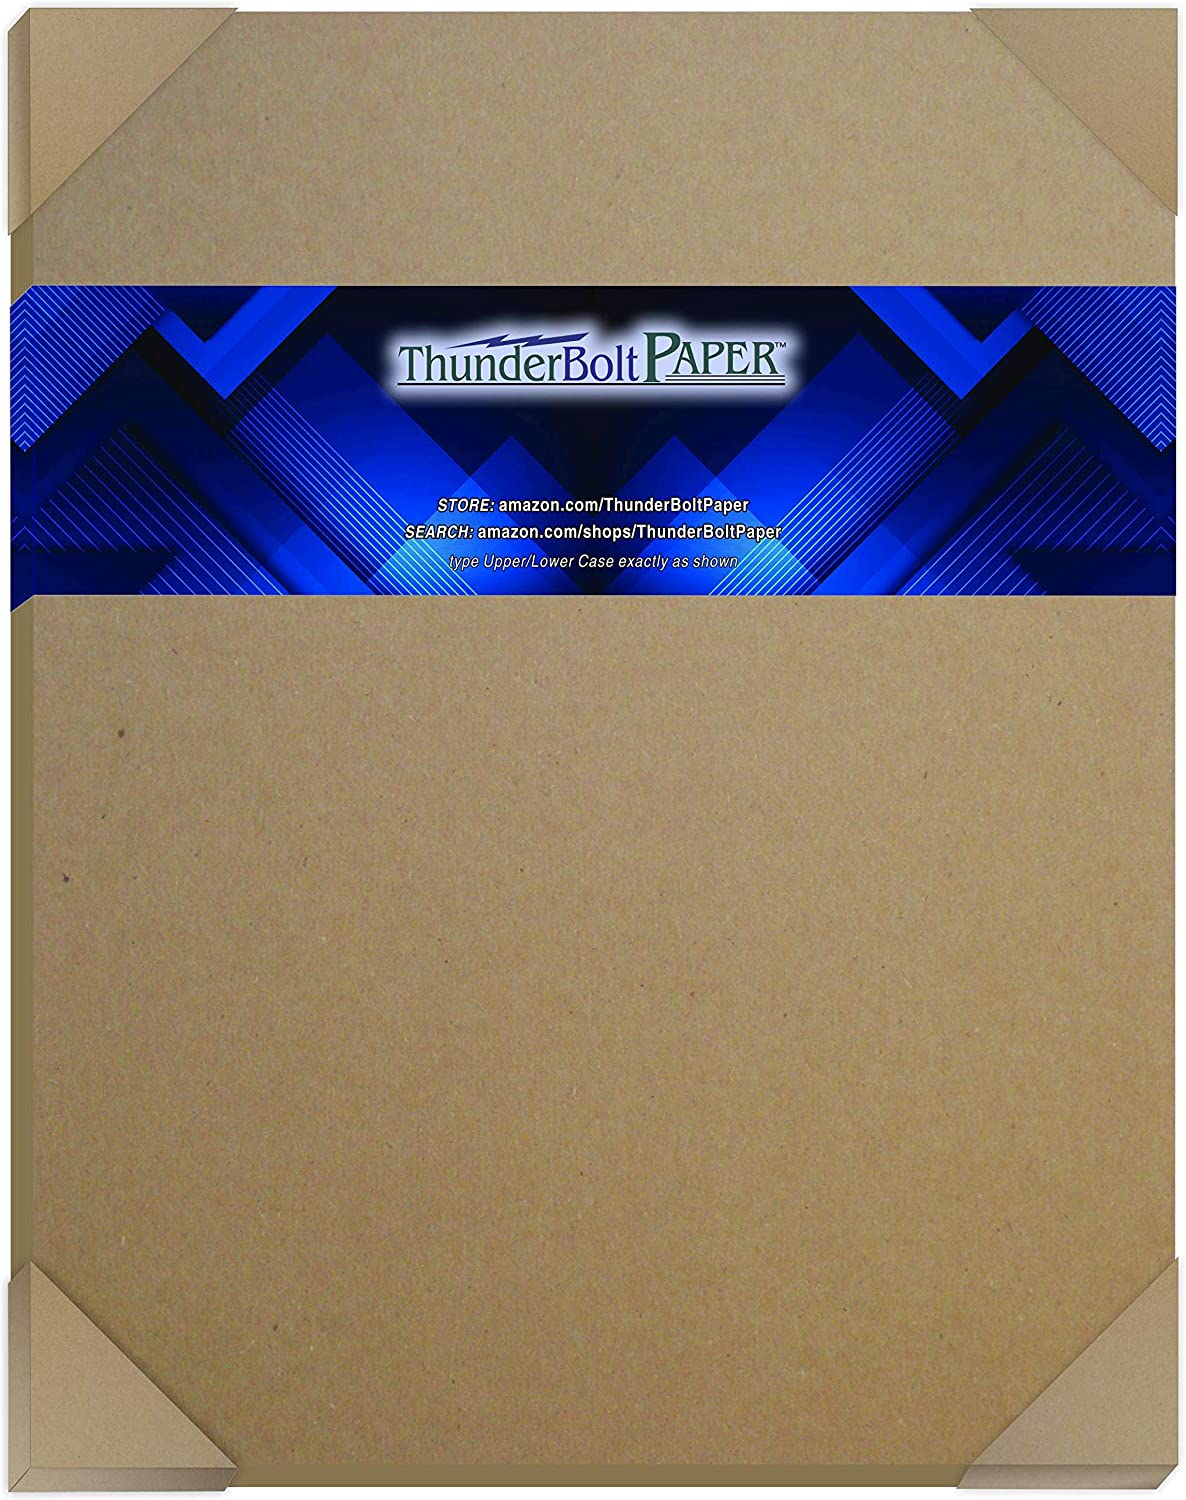 4 Sheets Brown Chipboard 80 Point Extra Inches Max 80% OFF 2021 model Thick 14 Pho 11 X